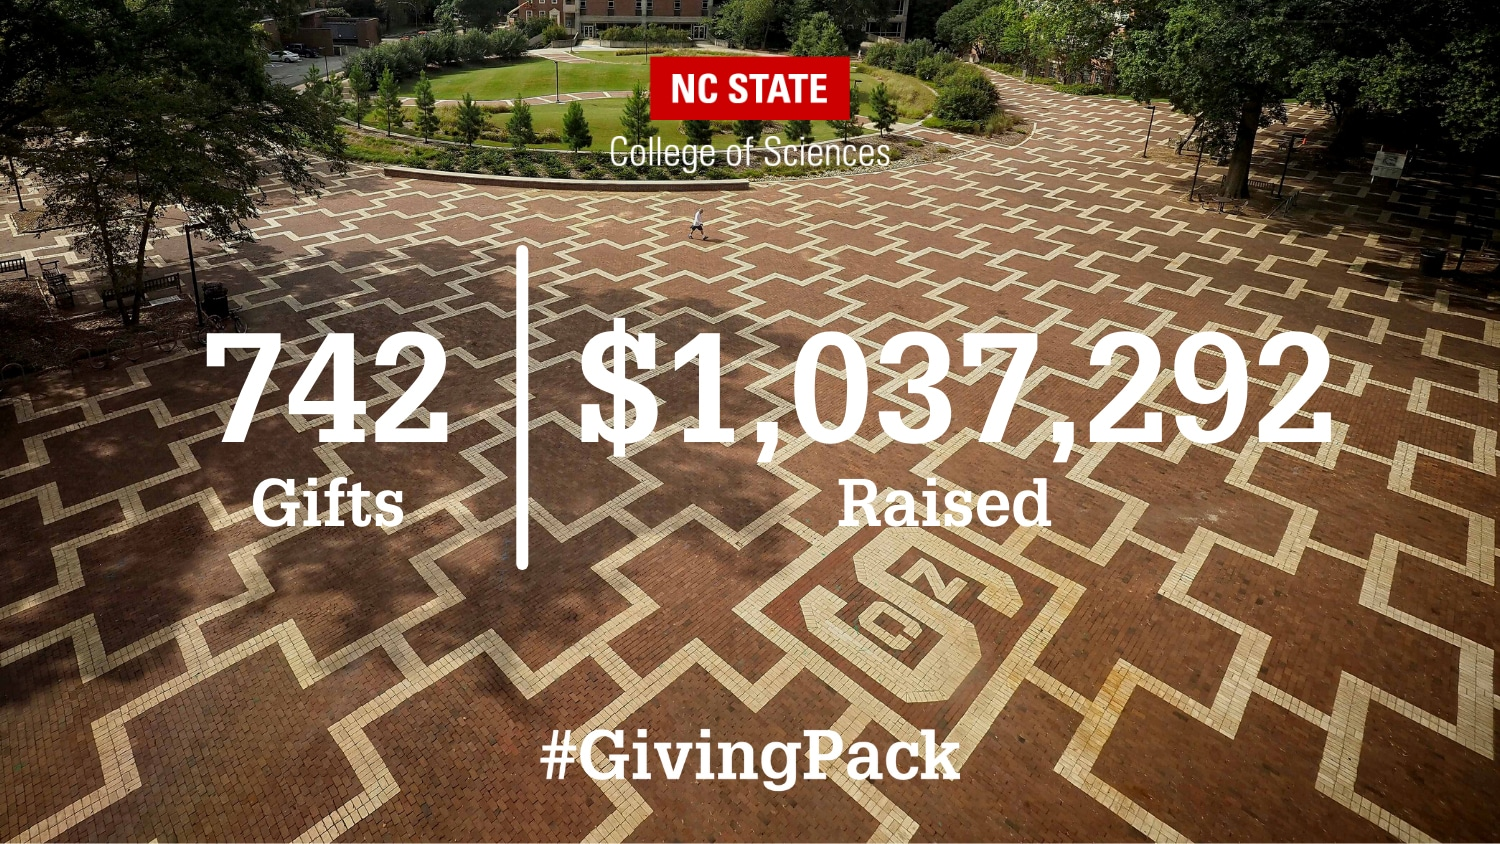 Photo of the NC State Brickyard with overlaid text: 742 gifts, $1,037,292 raised, #GivingPack